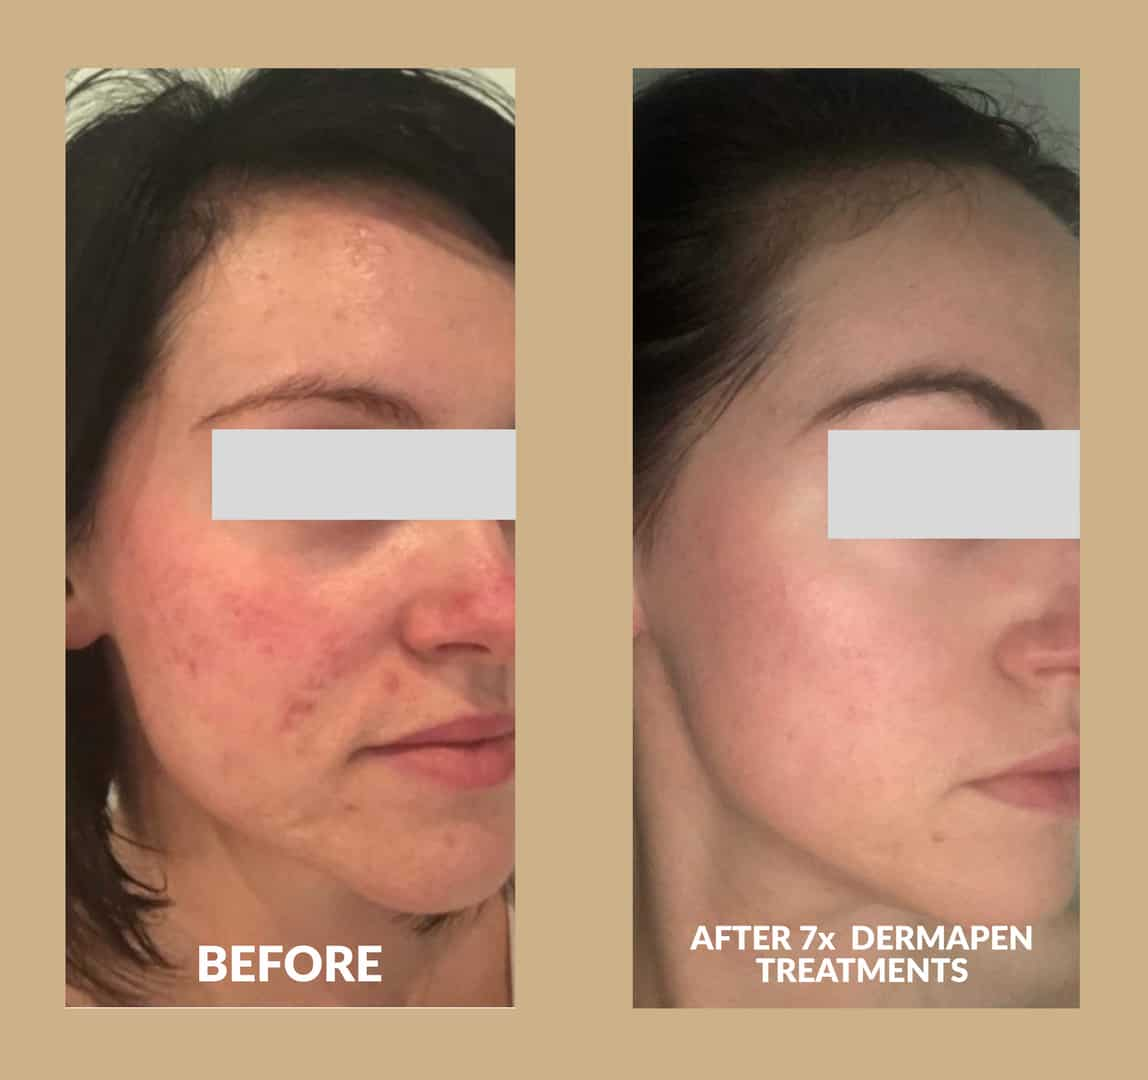 Two images showing before and after dermapen microneedling treatments